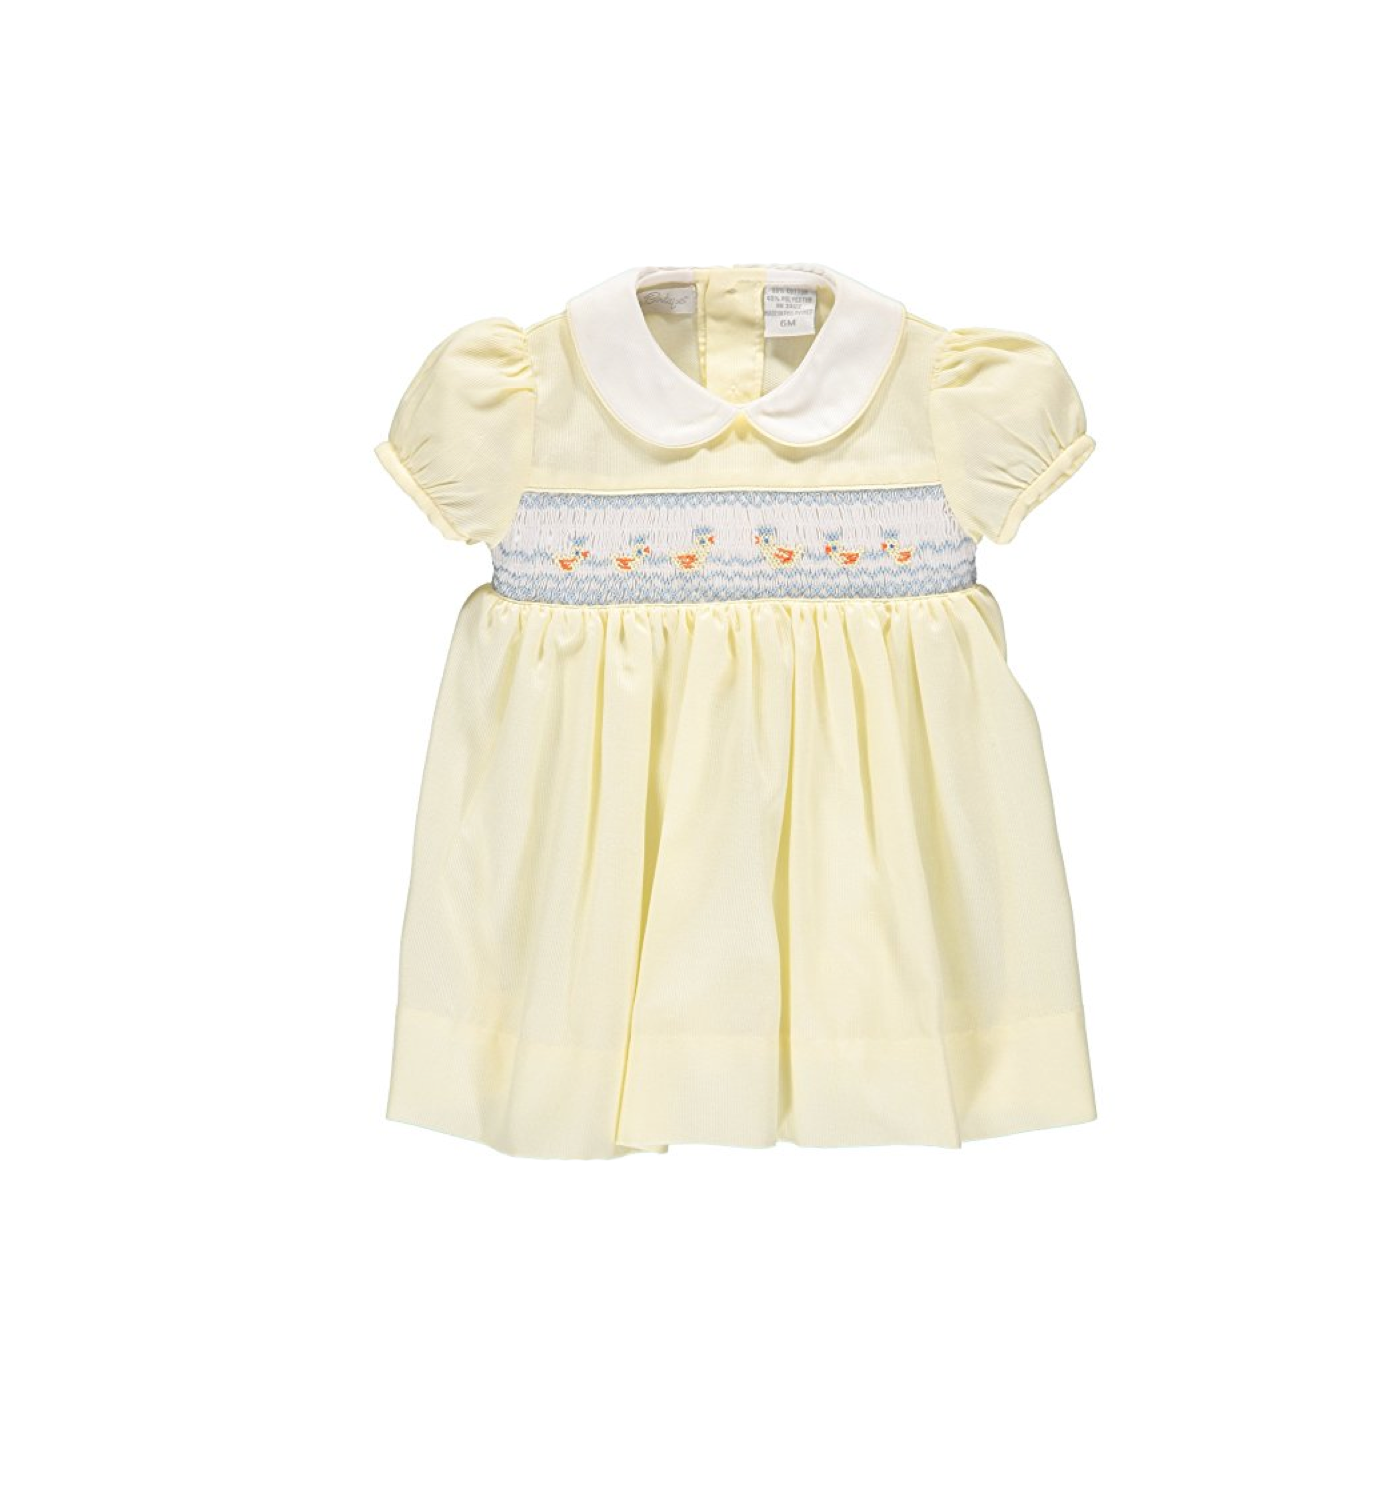 Classic Hand Smocked Dress with Yellow Spring Ducks